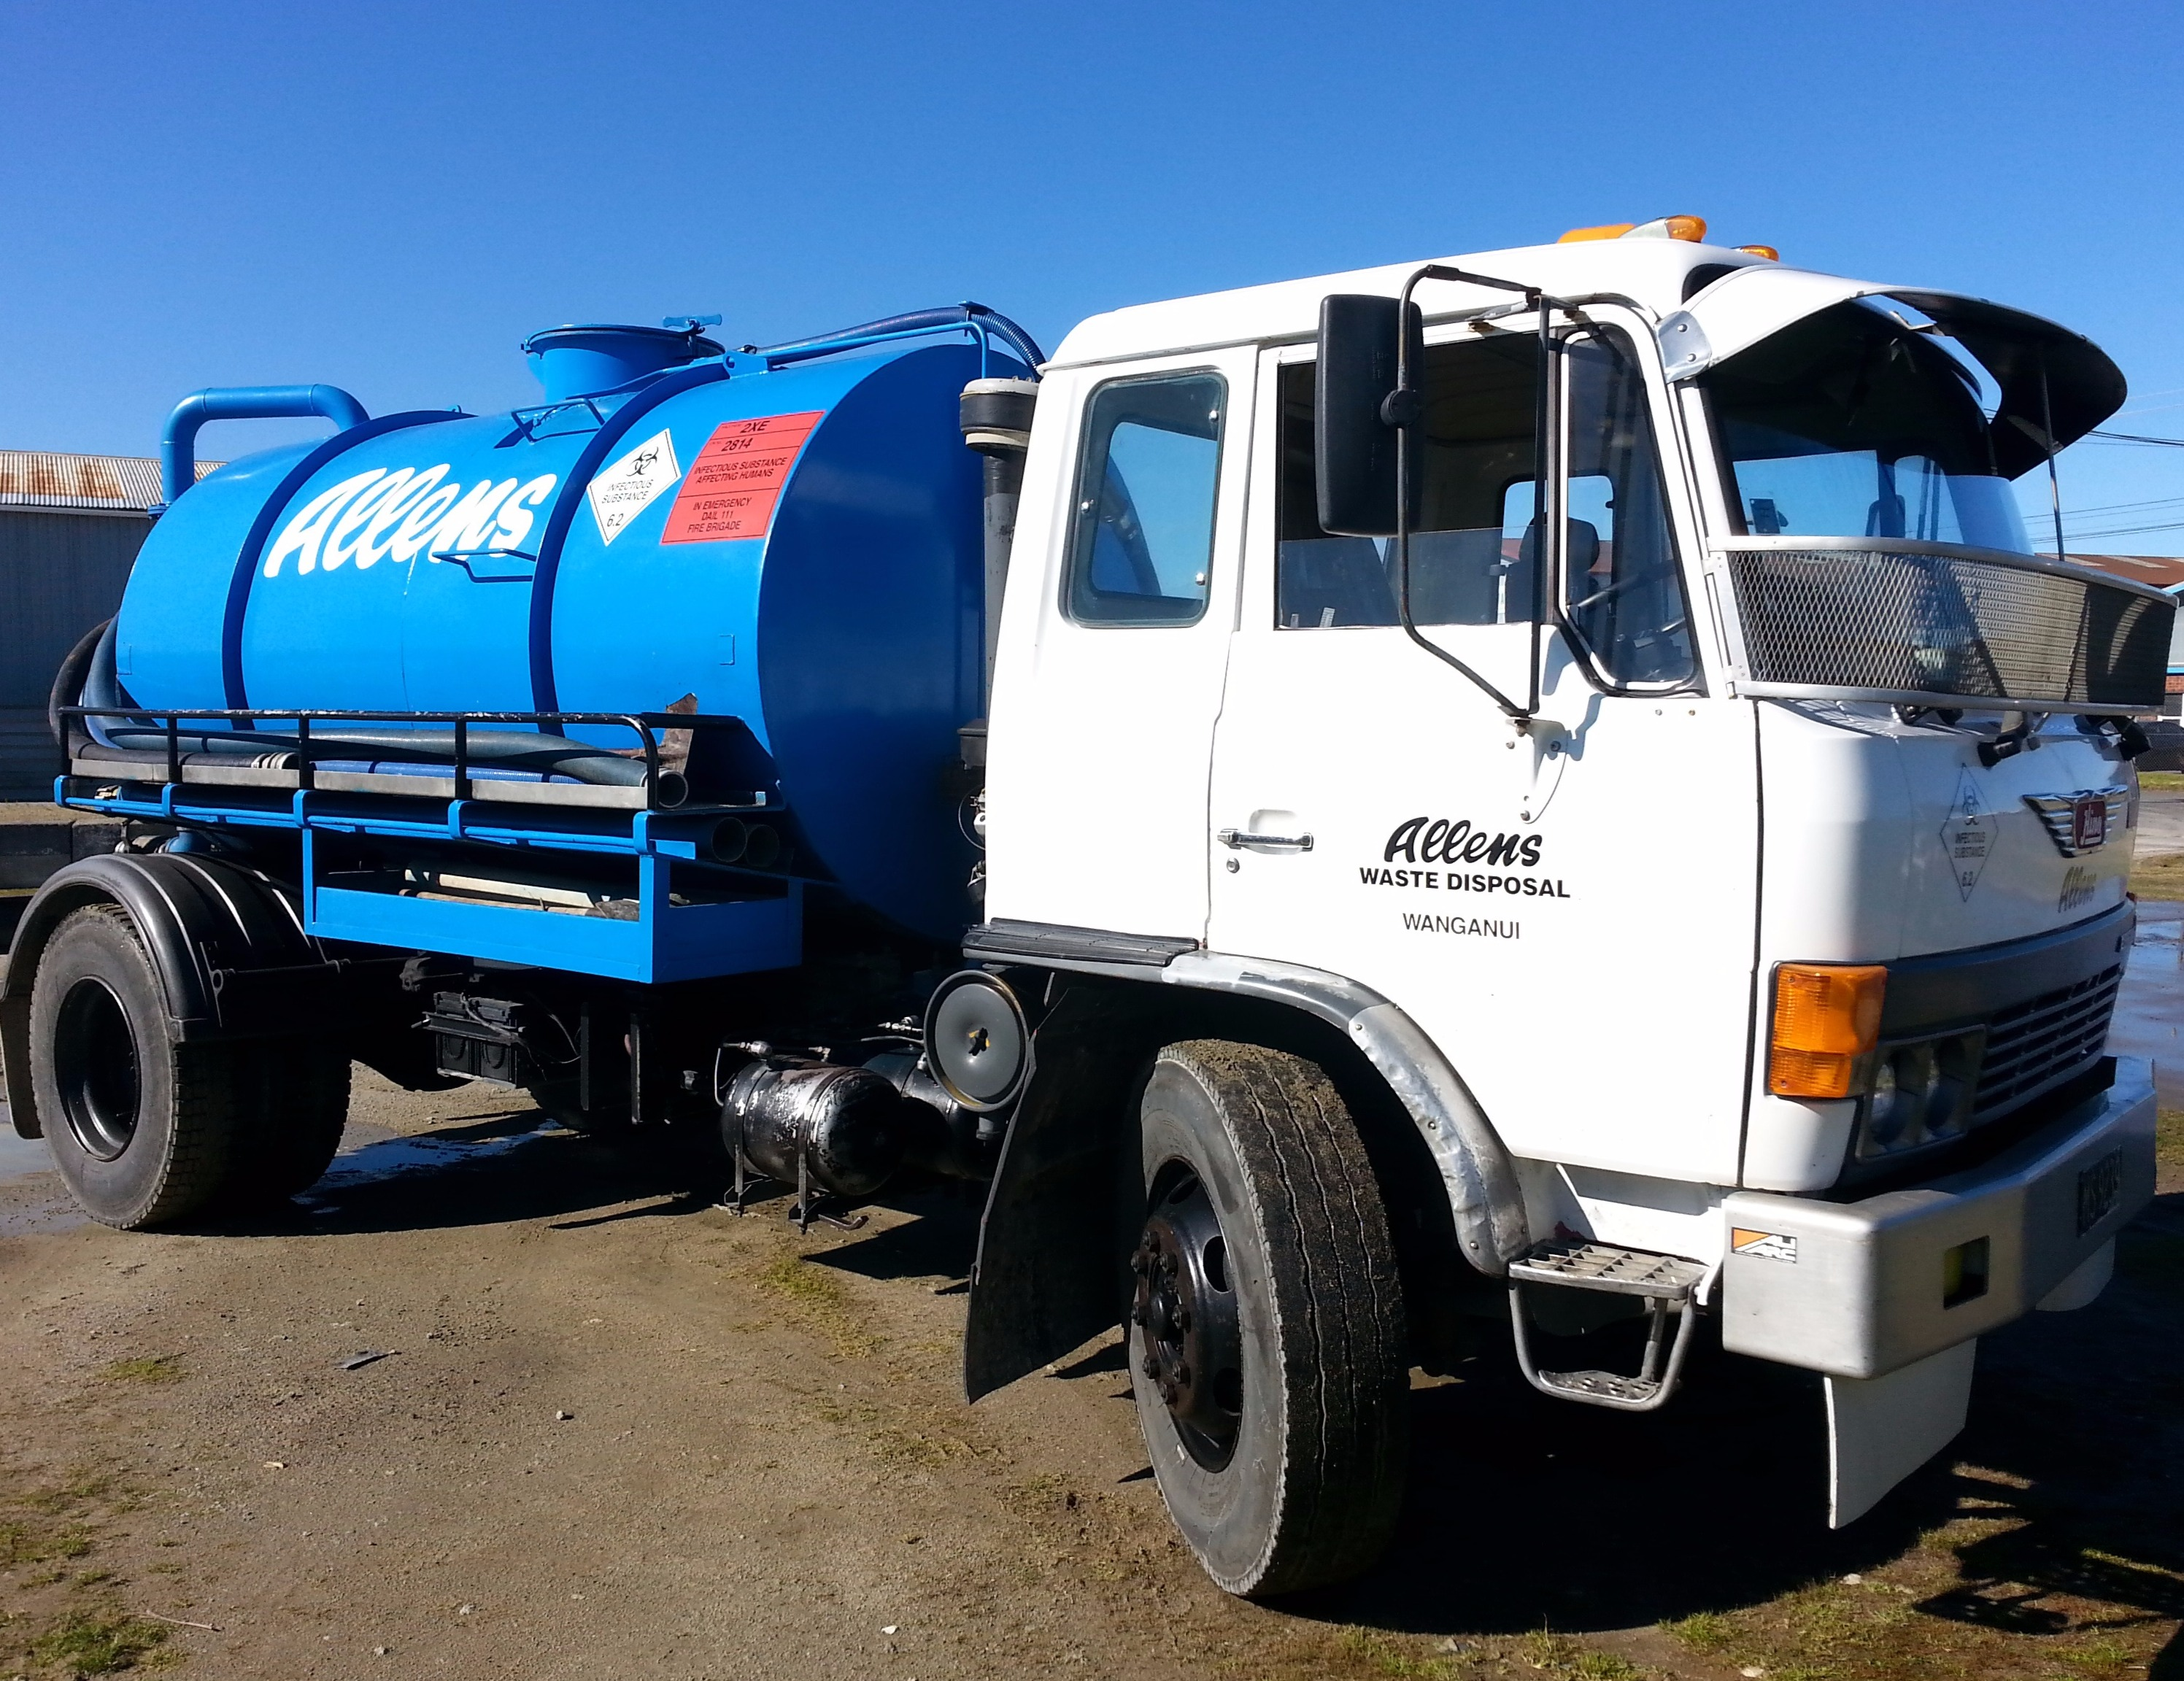 Allens Waste Disposal & Septic Tank Cleaners